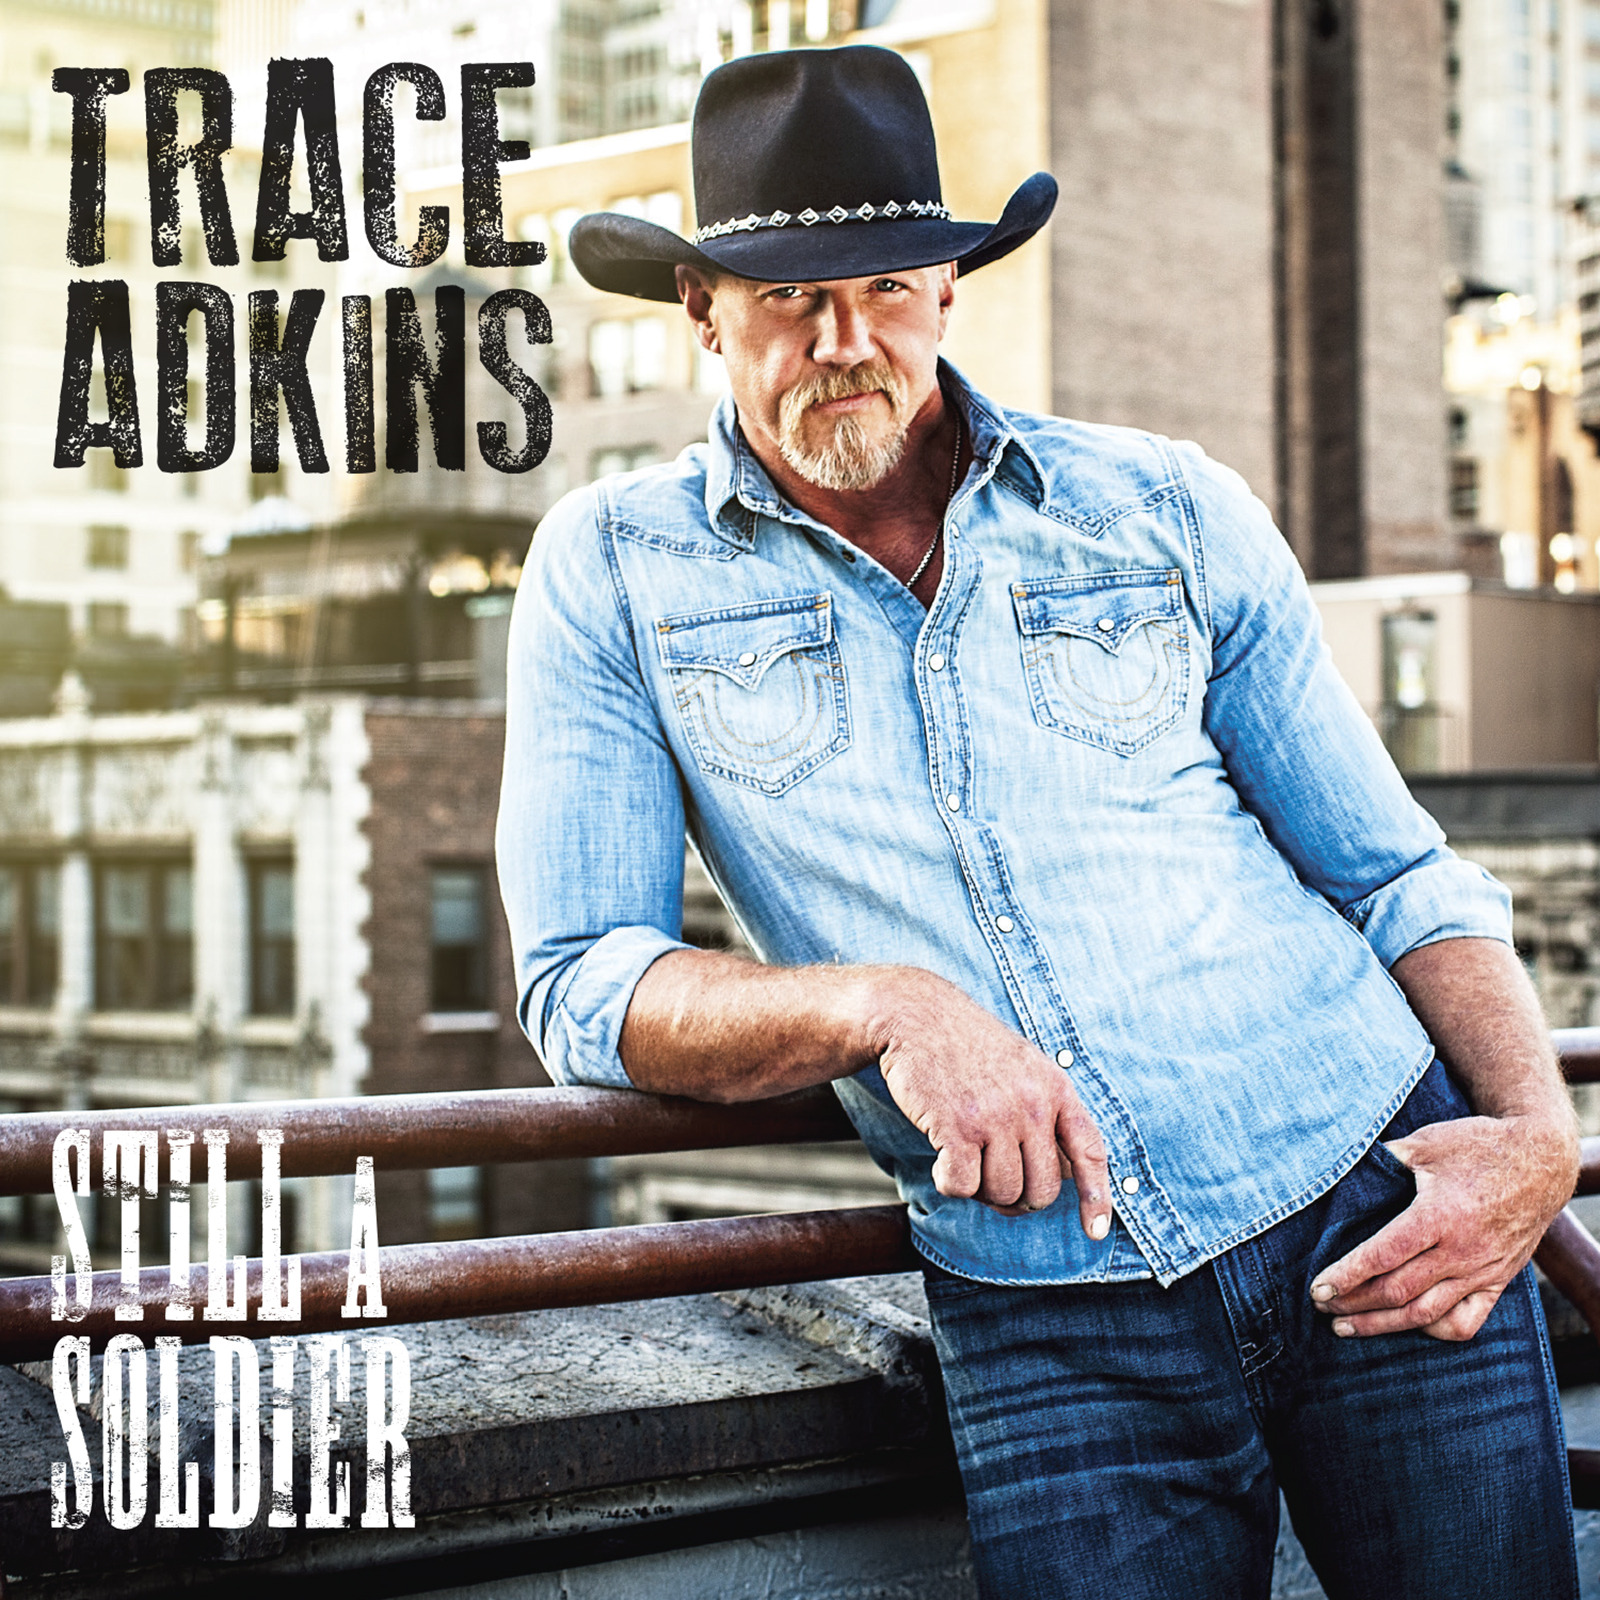 trace adkins still a soldier